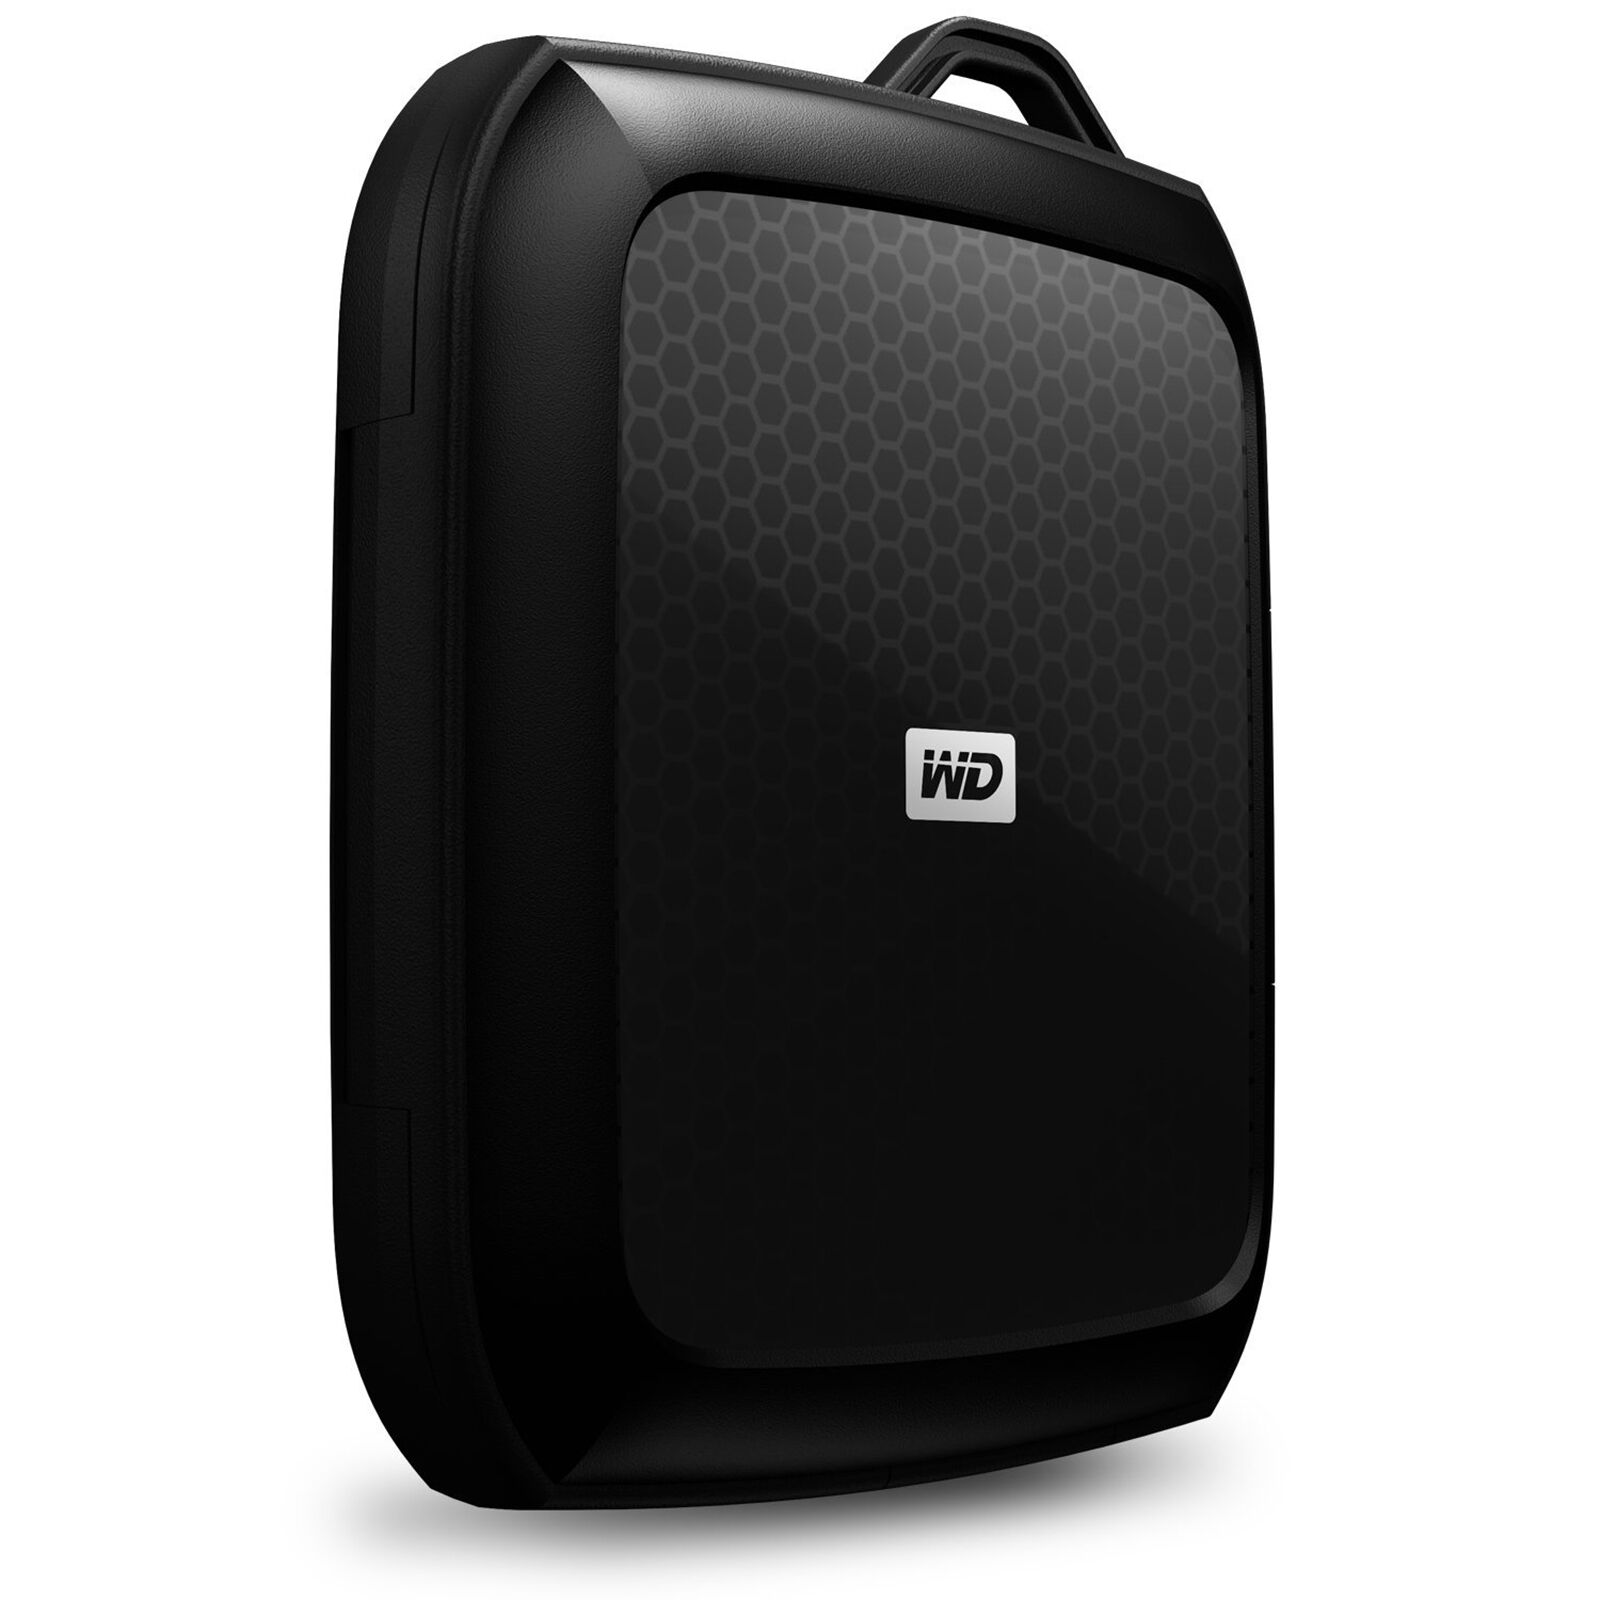 Wdwestern Digital Nomad Rugged Case For 25 External Hard Drive Ekternal Harddisk Wd Ultra 3tb Free Powerbank 1 Of 7only 3 Available